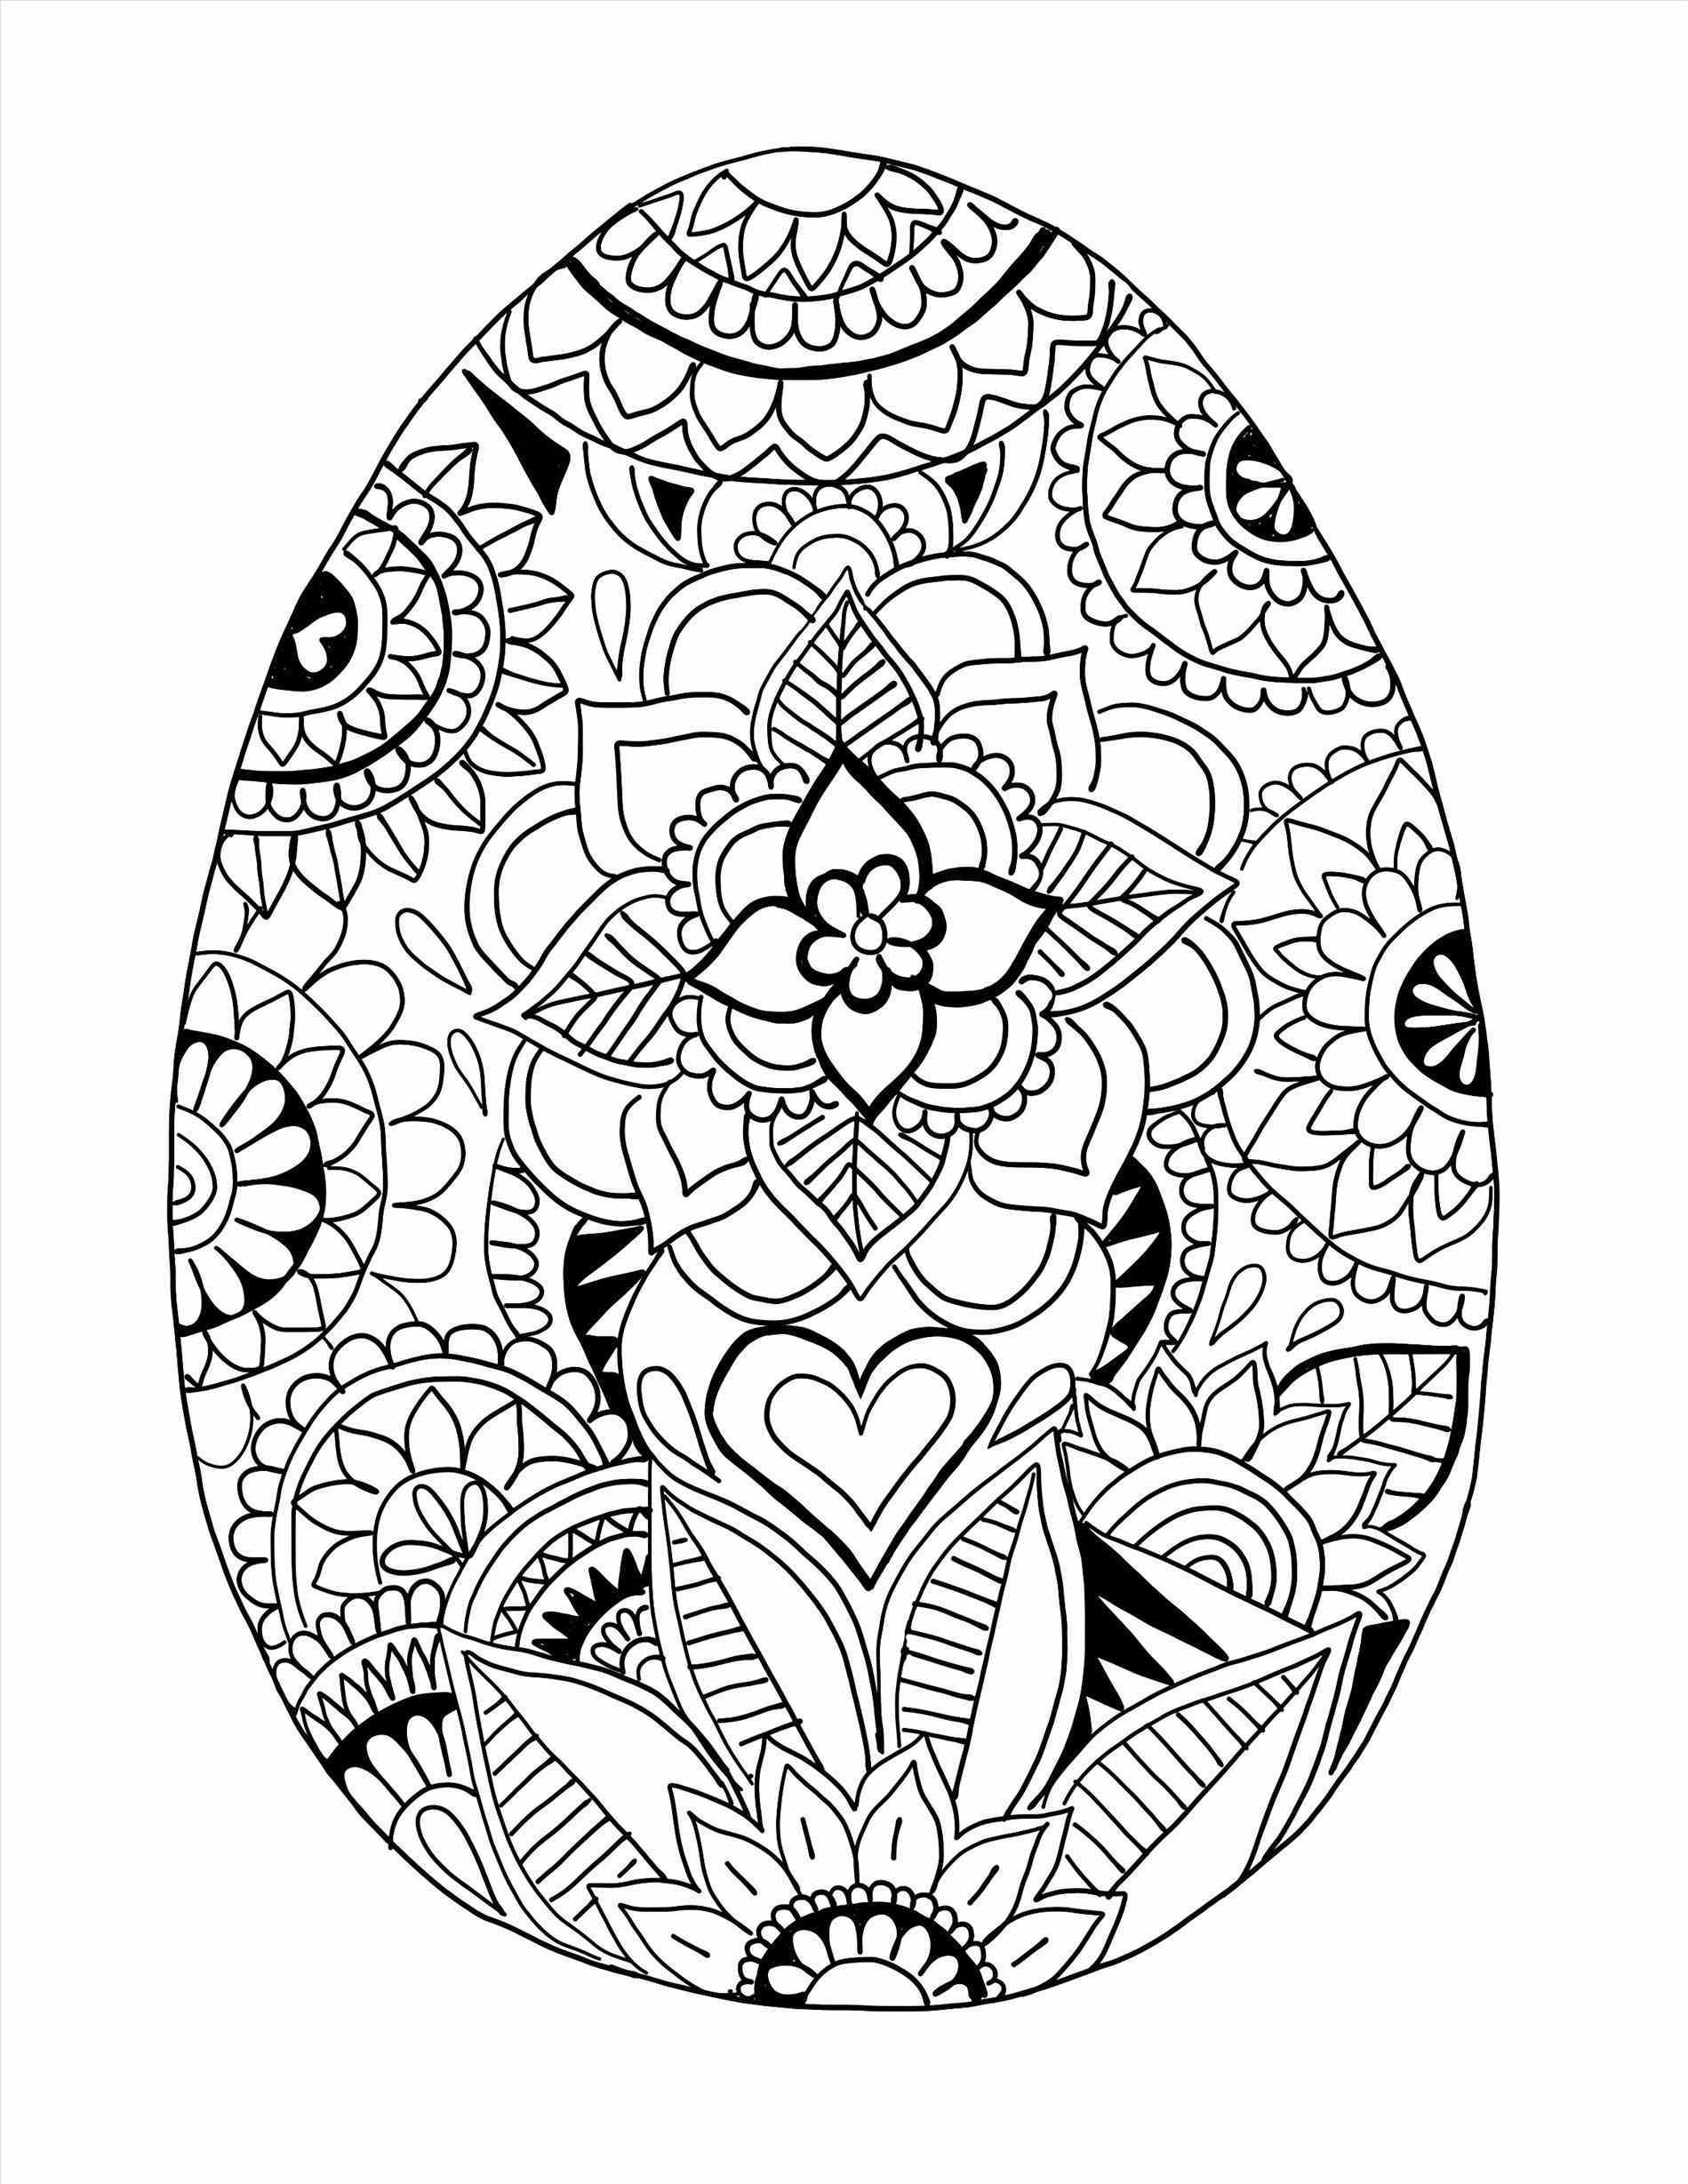 Detailed Easter Egg Coloring Pages At Getdrawings